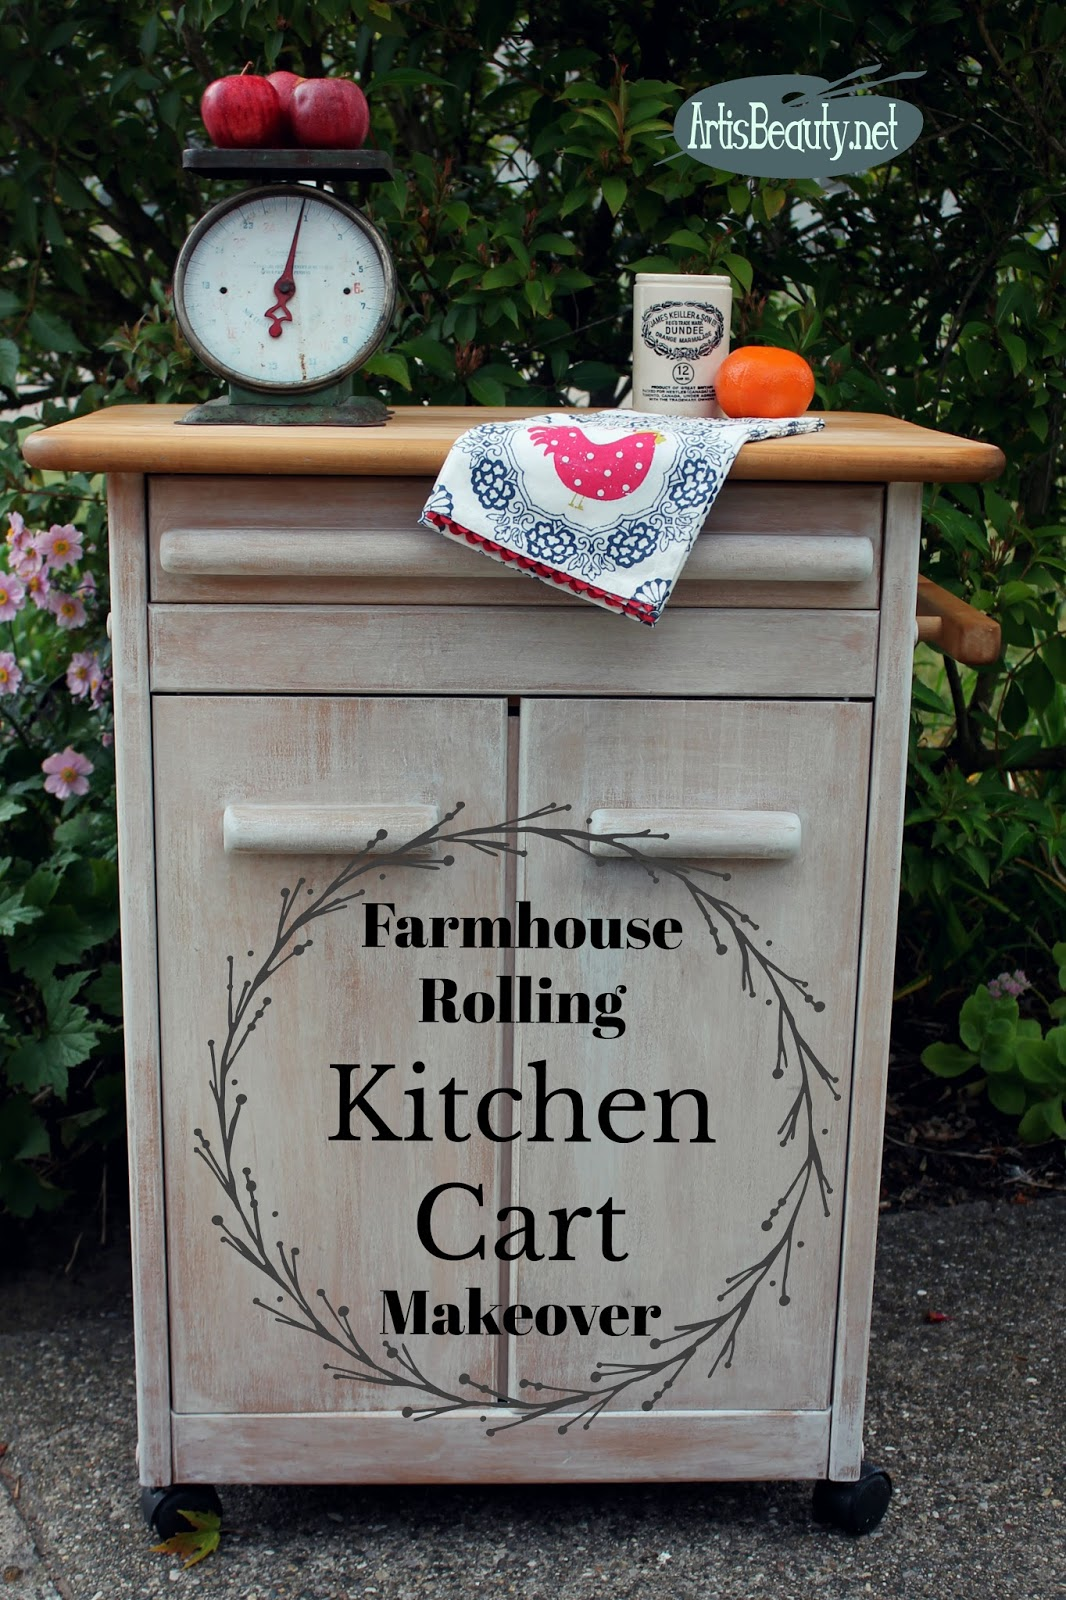 Fresh farmhouse Rolling Kitchen Cart makeover vintage effects paint wash farmhouse style diy